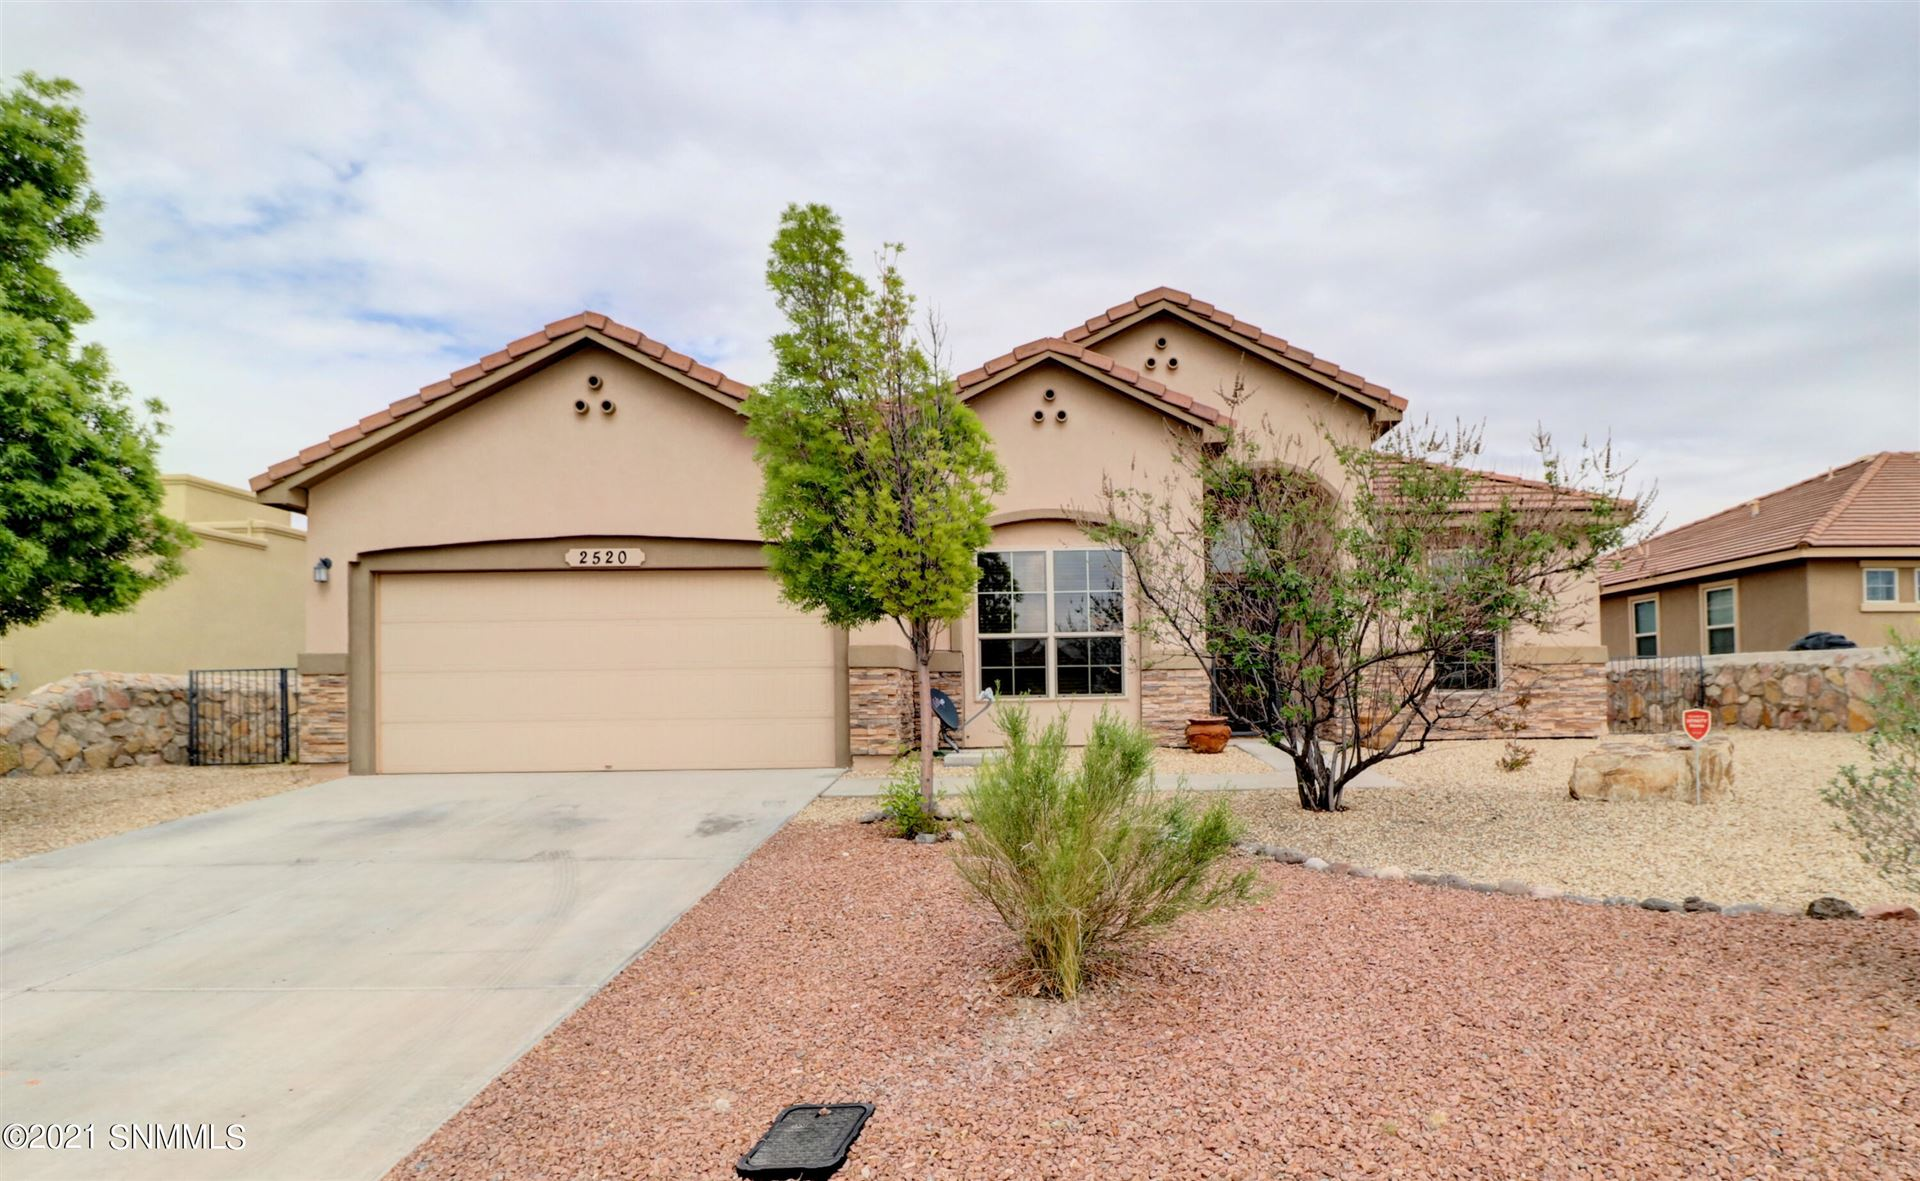 2520 Velarde Place, Las Cruces, NM 88011 - #: 2101220